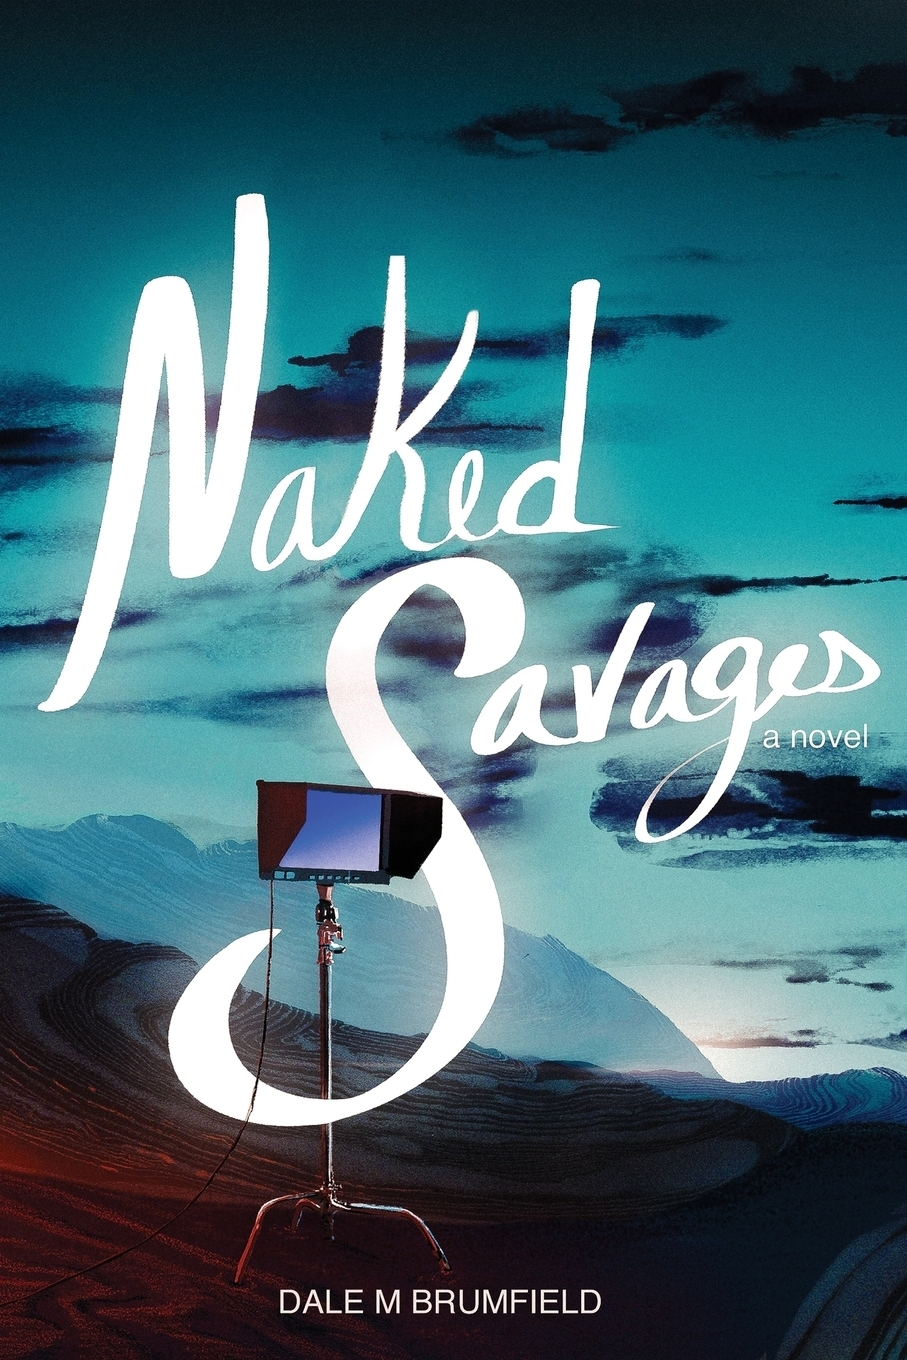 Dale M Brumfield. Naked Savages